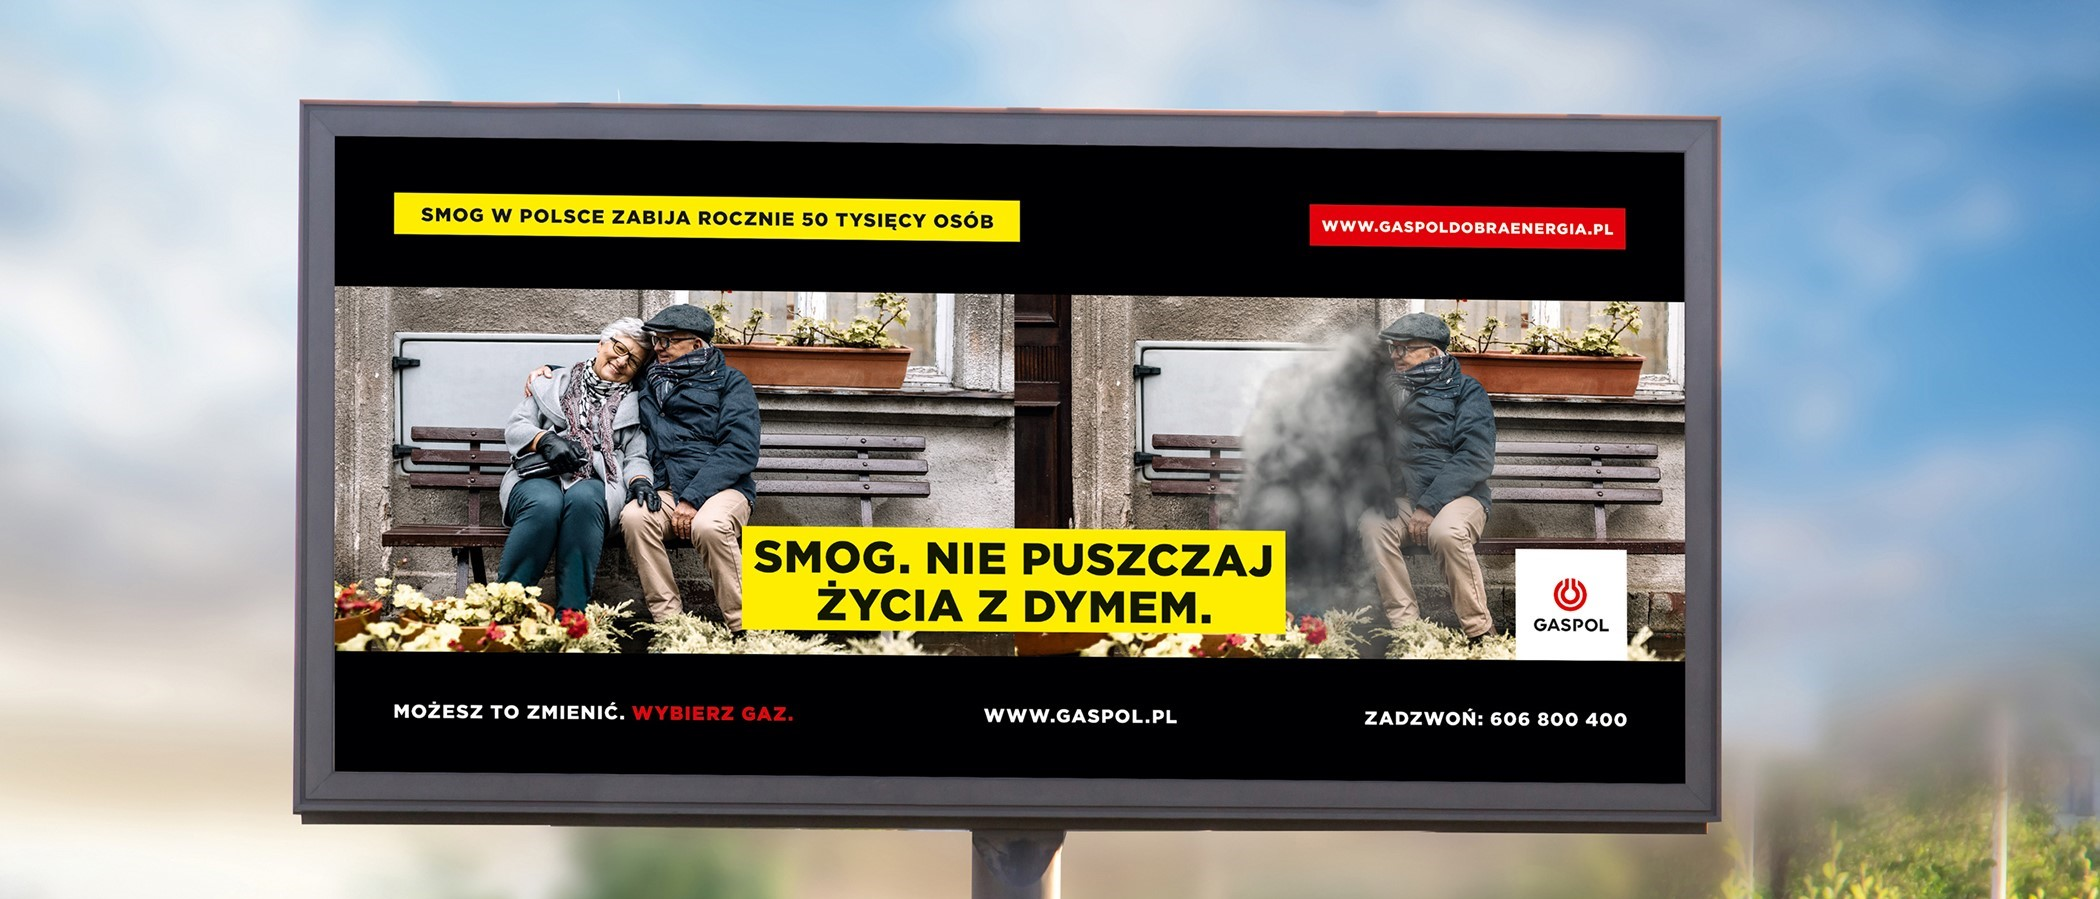 Gaspol runs a successful anti-smog campaign in Poland